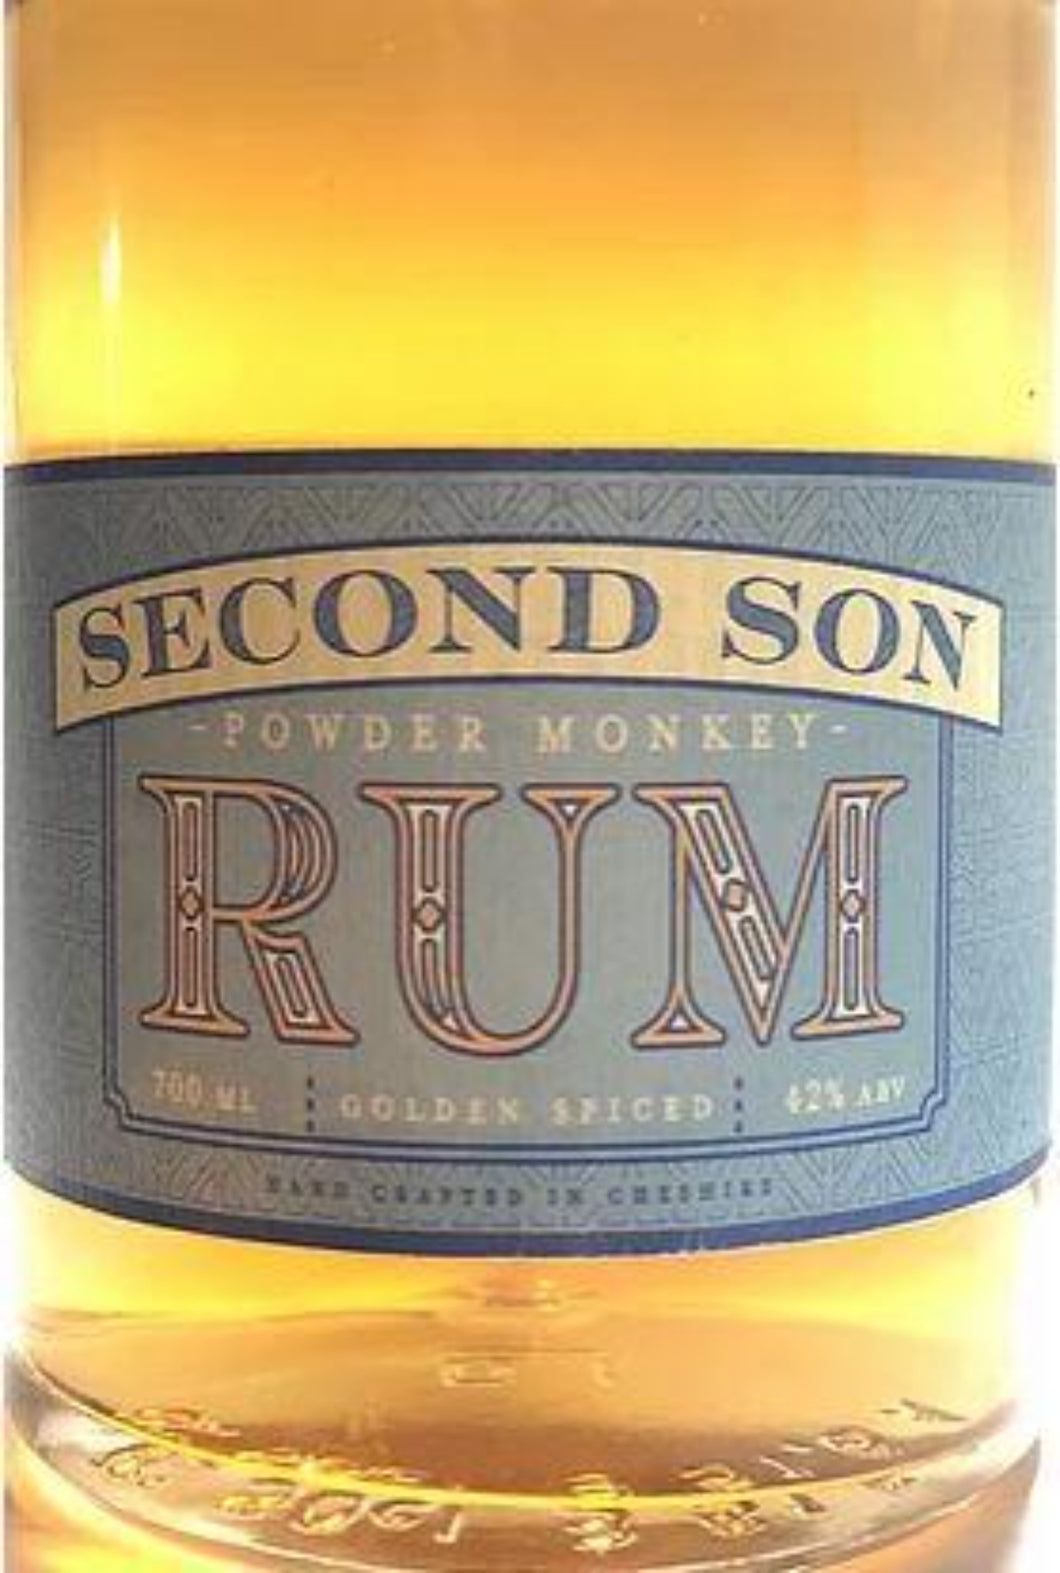 10% Off, Second Son Powder Monkey Spiced Rum